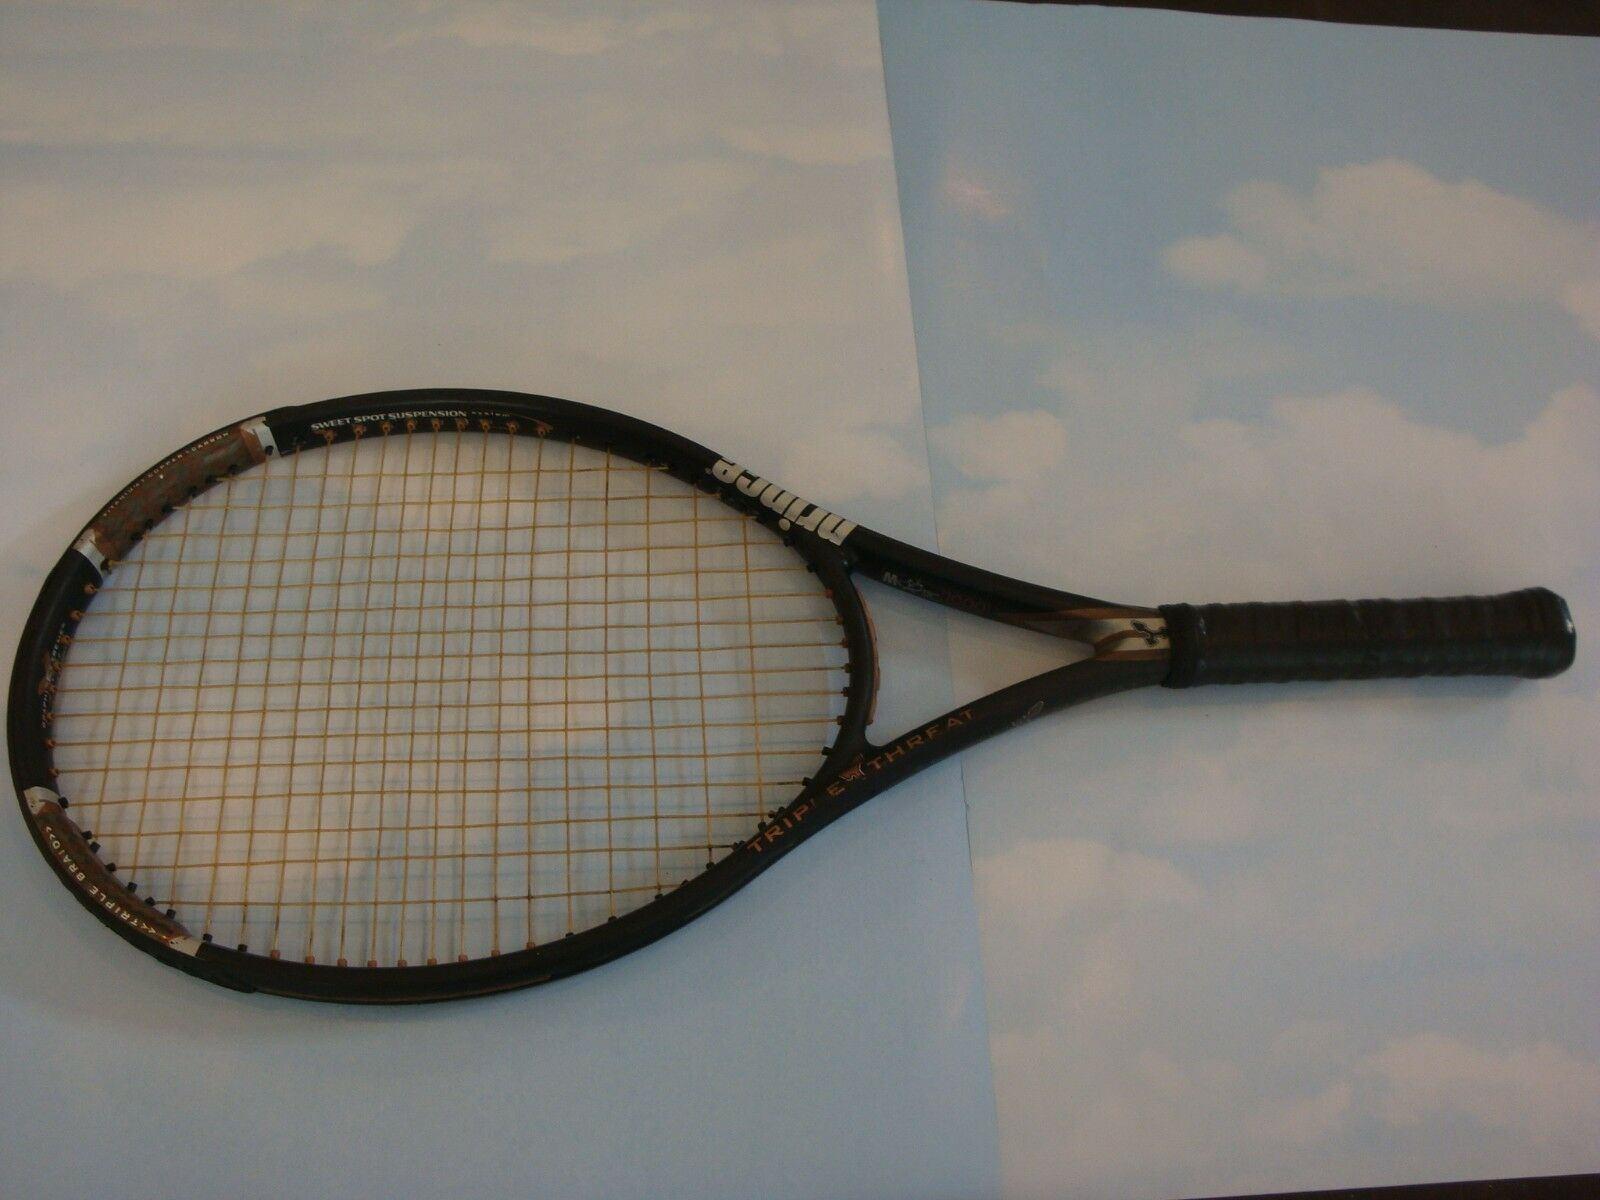 PRINCE TT TRIPLE THREAT STEALTH OS OS STEALTH OVERSIZE,(4-1/4-3/8)*   {inv=300326} 0c3981